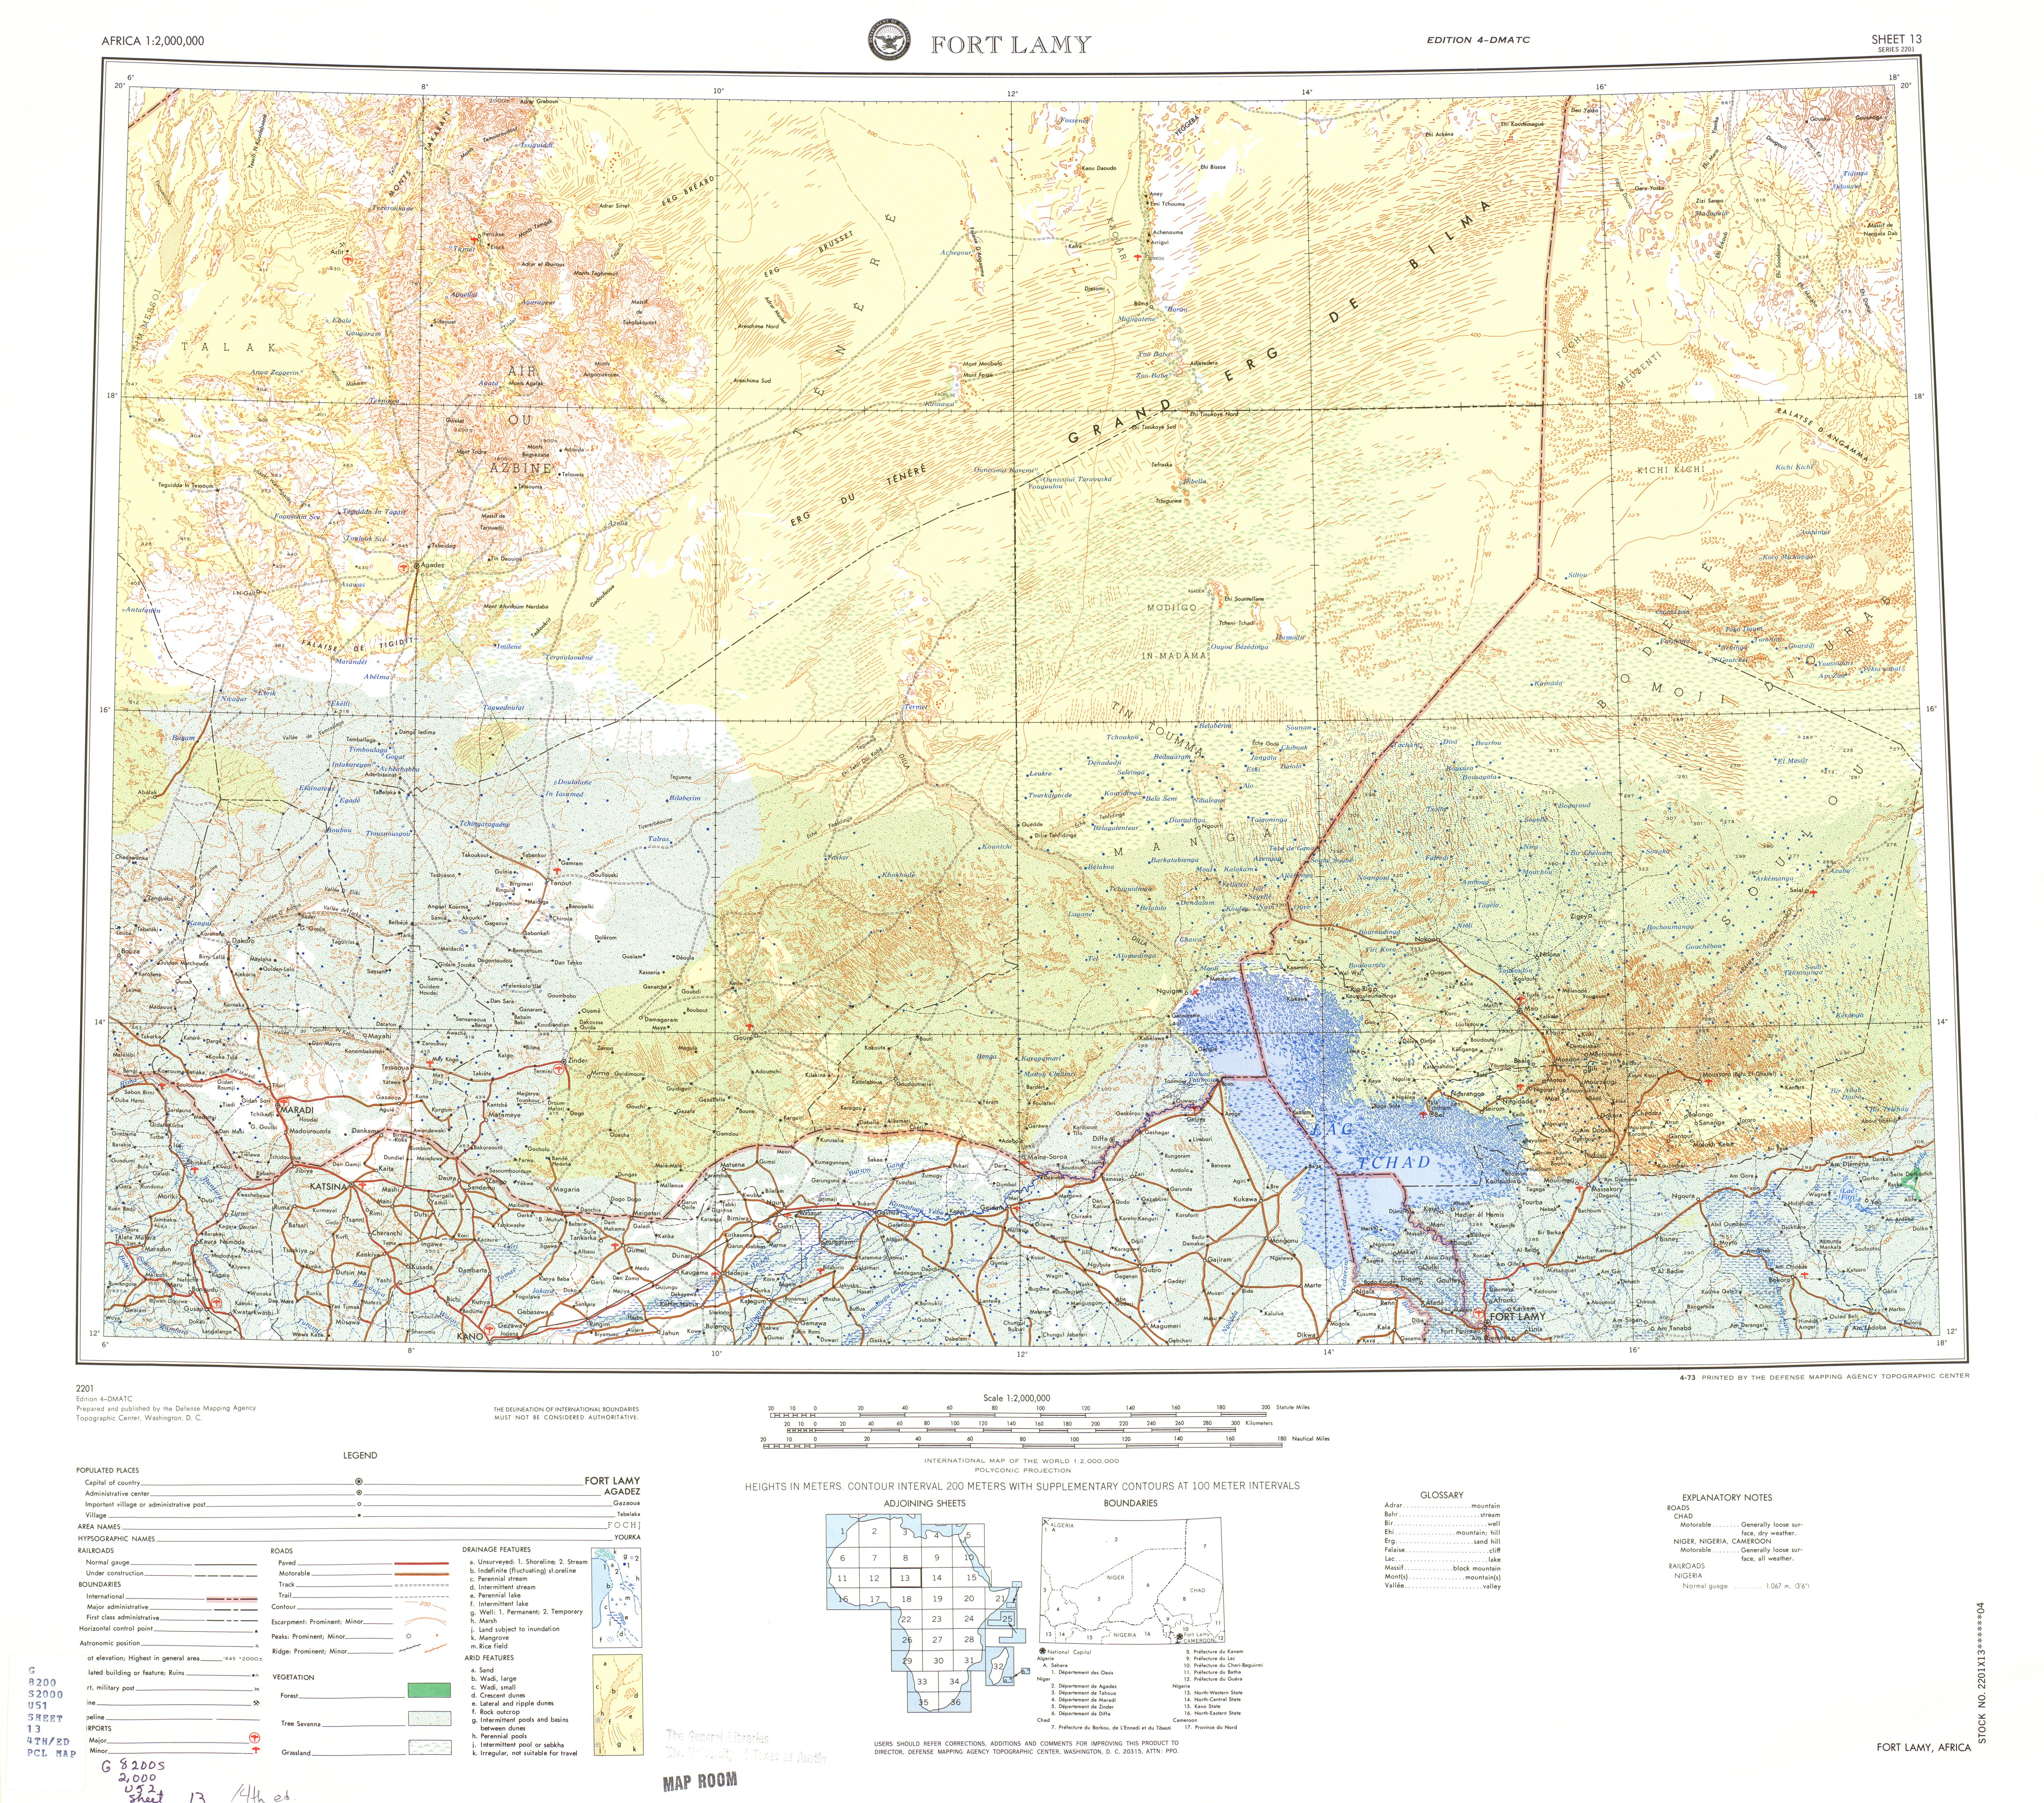 Fort Lamy Topographic Sheet Map, Africa 1973